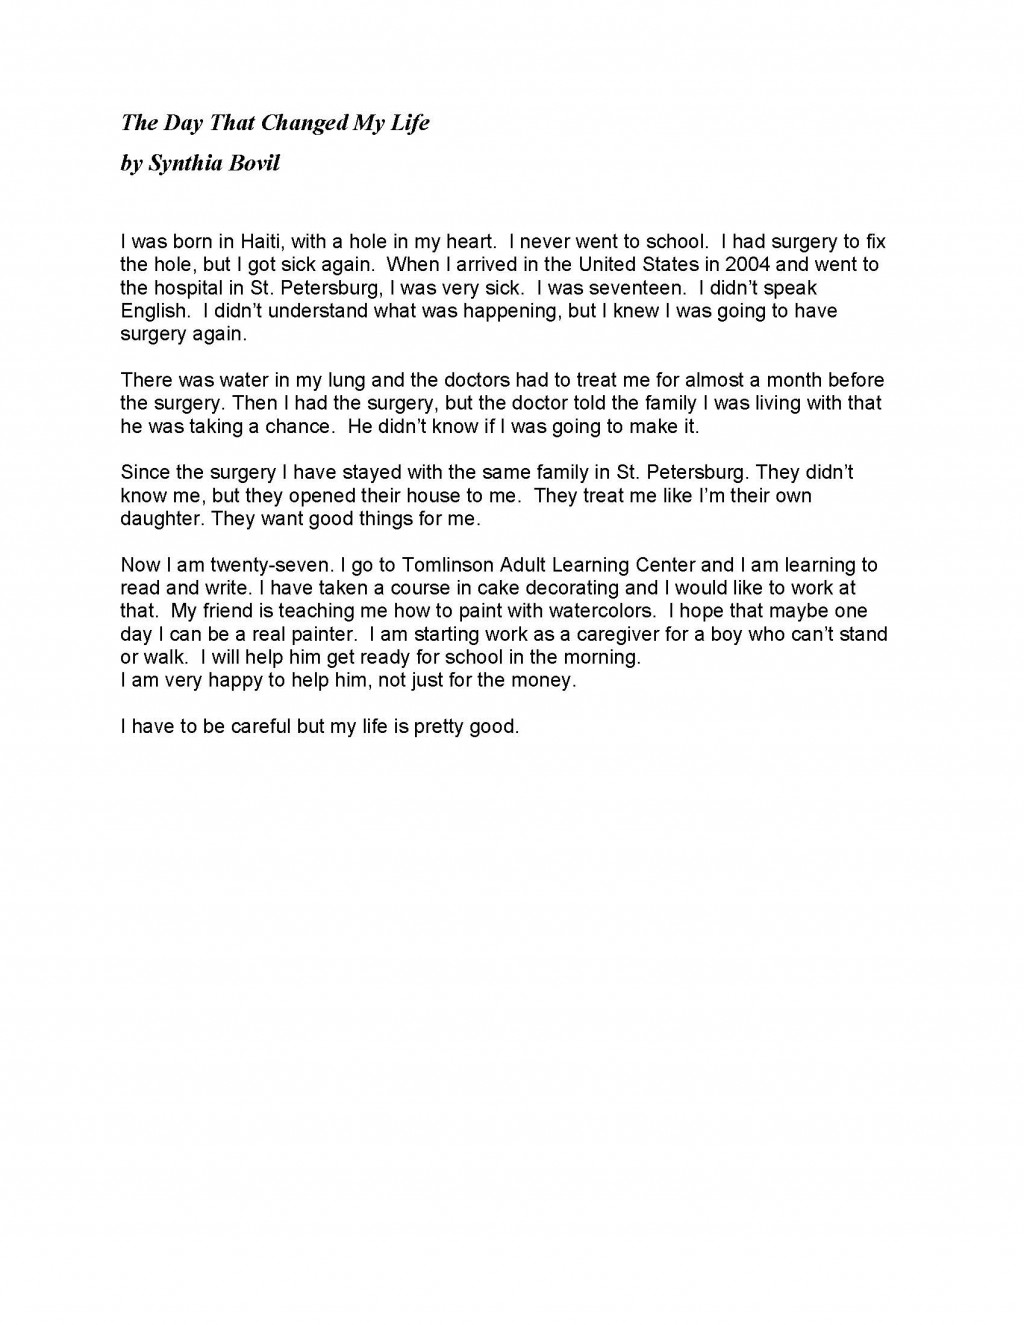 010 Essay Example Student Stories May 2014 Page 1 How Technology Has Changed Our Awesome Lives Pdf On For The Worst Large